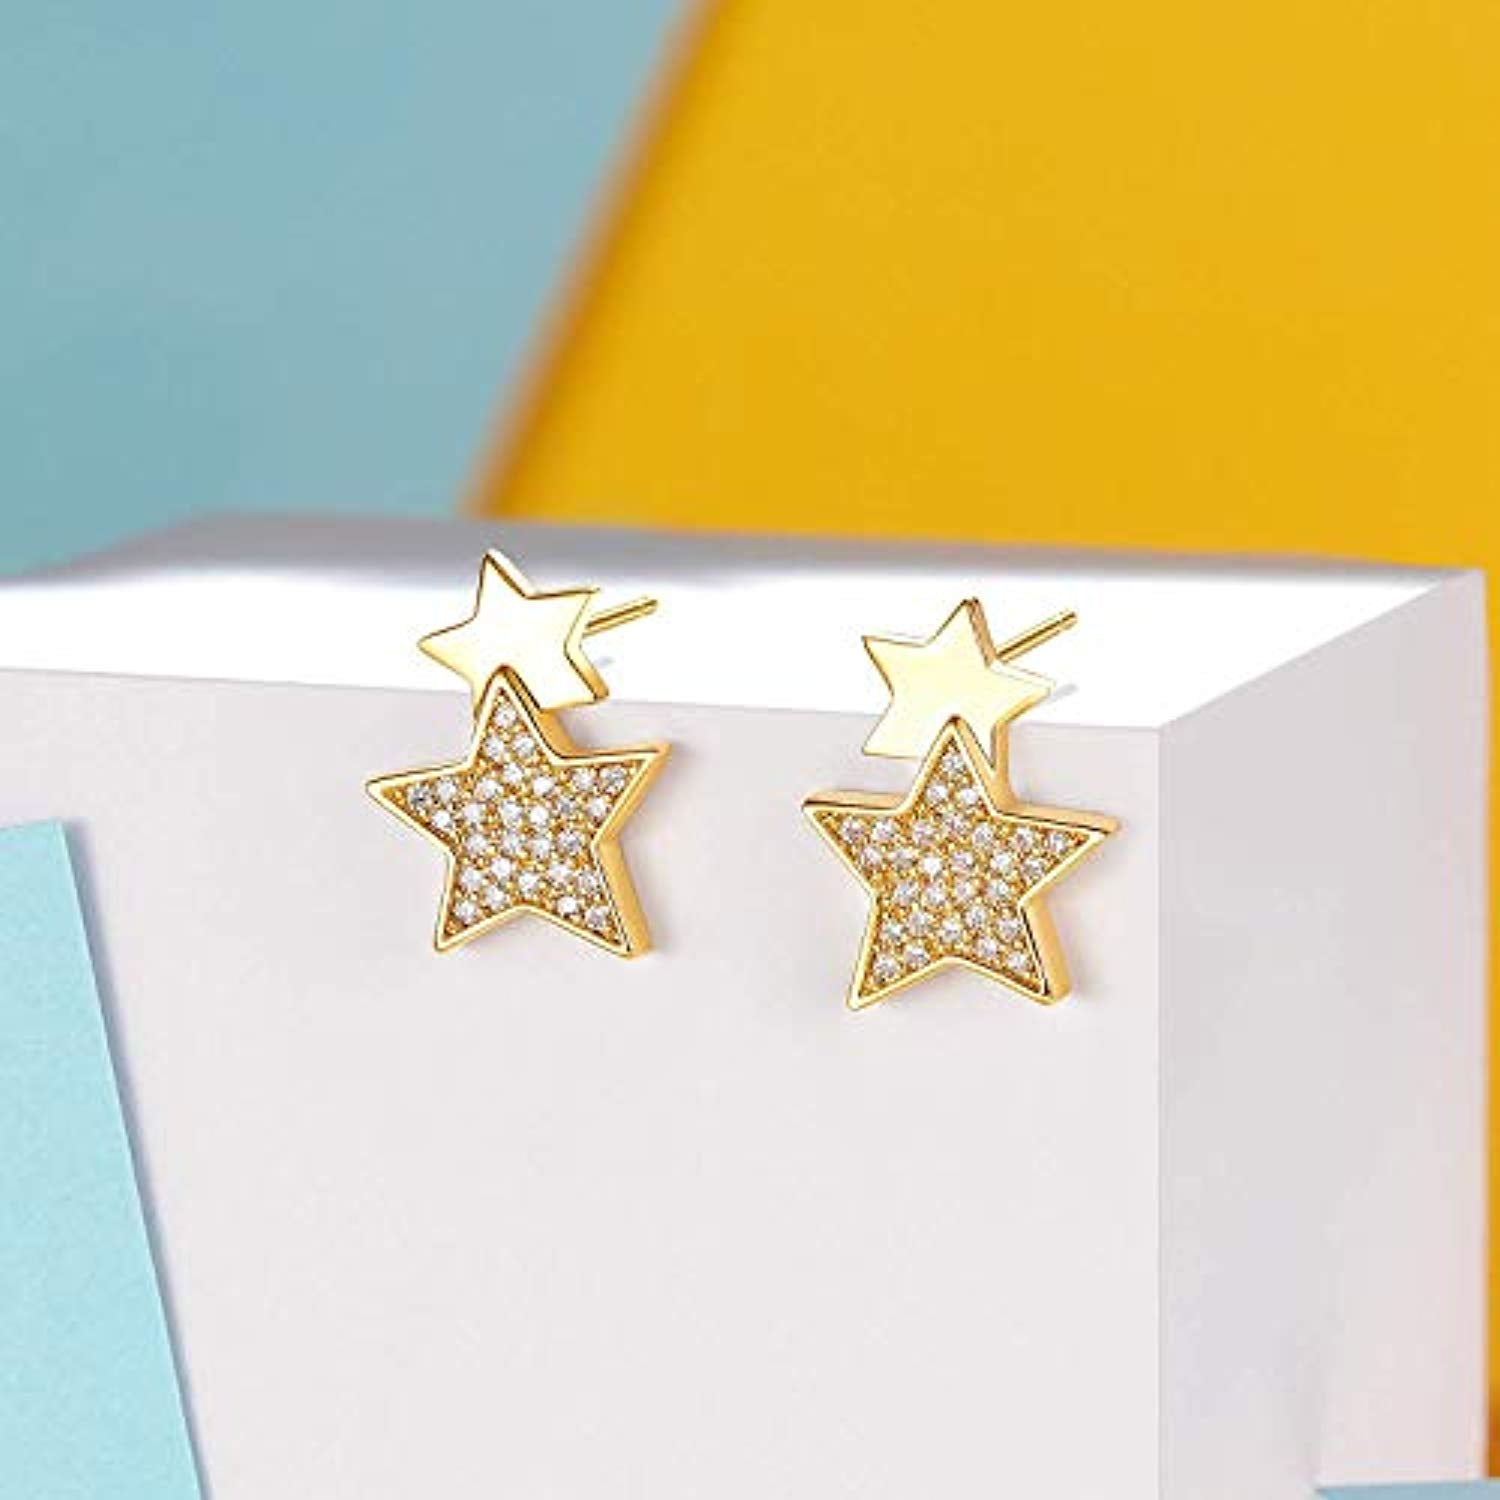 14K Yellow Gold Plated S925 Sterling Silver Cubic Zirconia CZ Stars Stud Earrings Trendy Jewelry